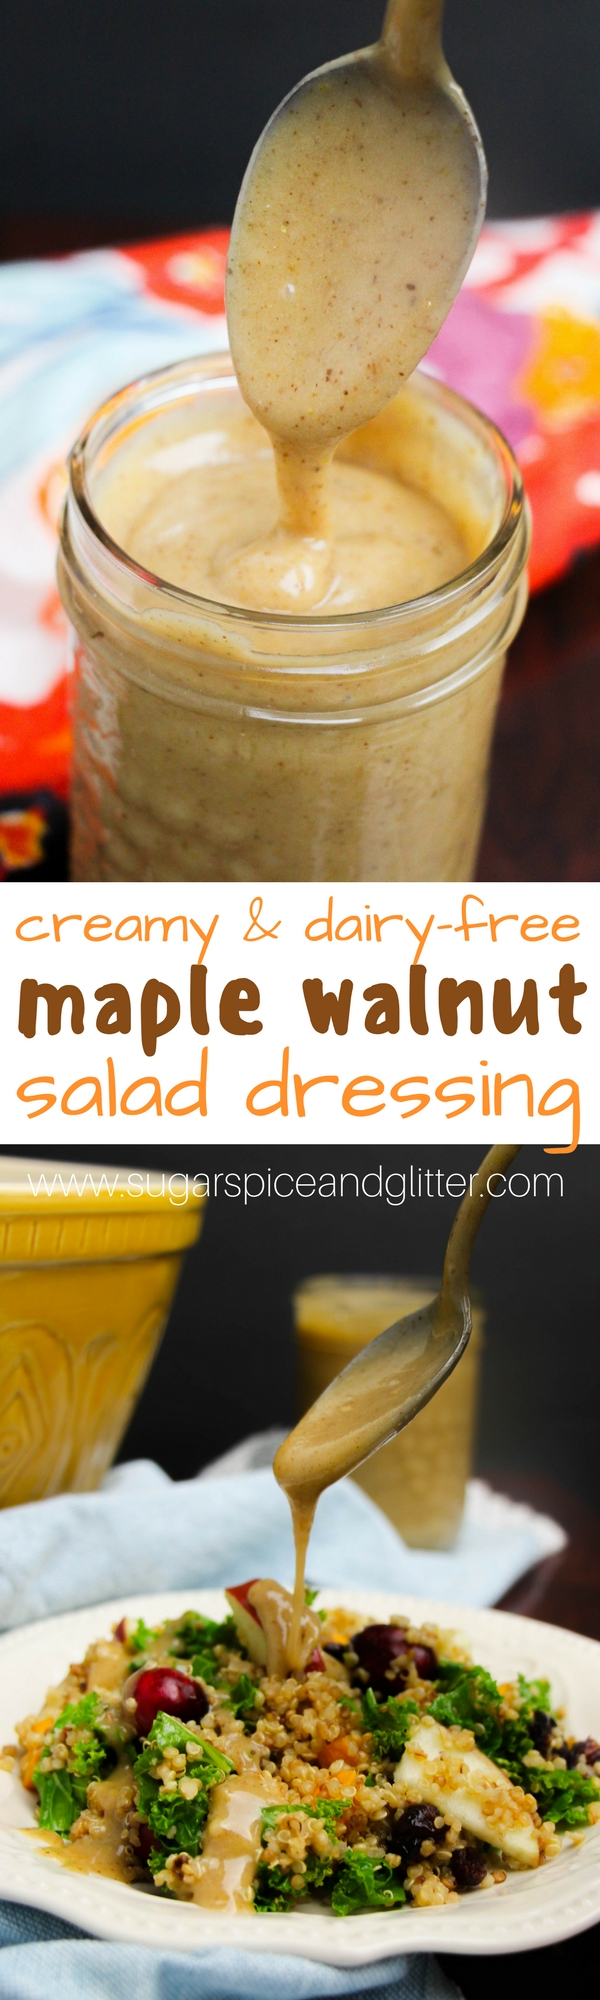 Fresh Fall Quinoa Salad with Maple Walnut Dressing - this creamy dairy-free salad dressing is absolutely amazing!